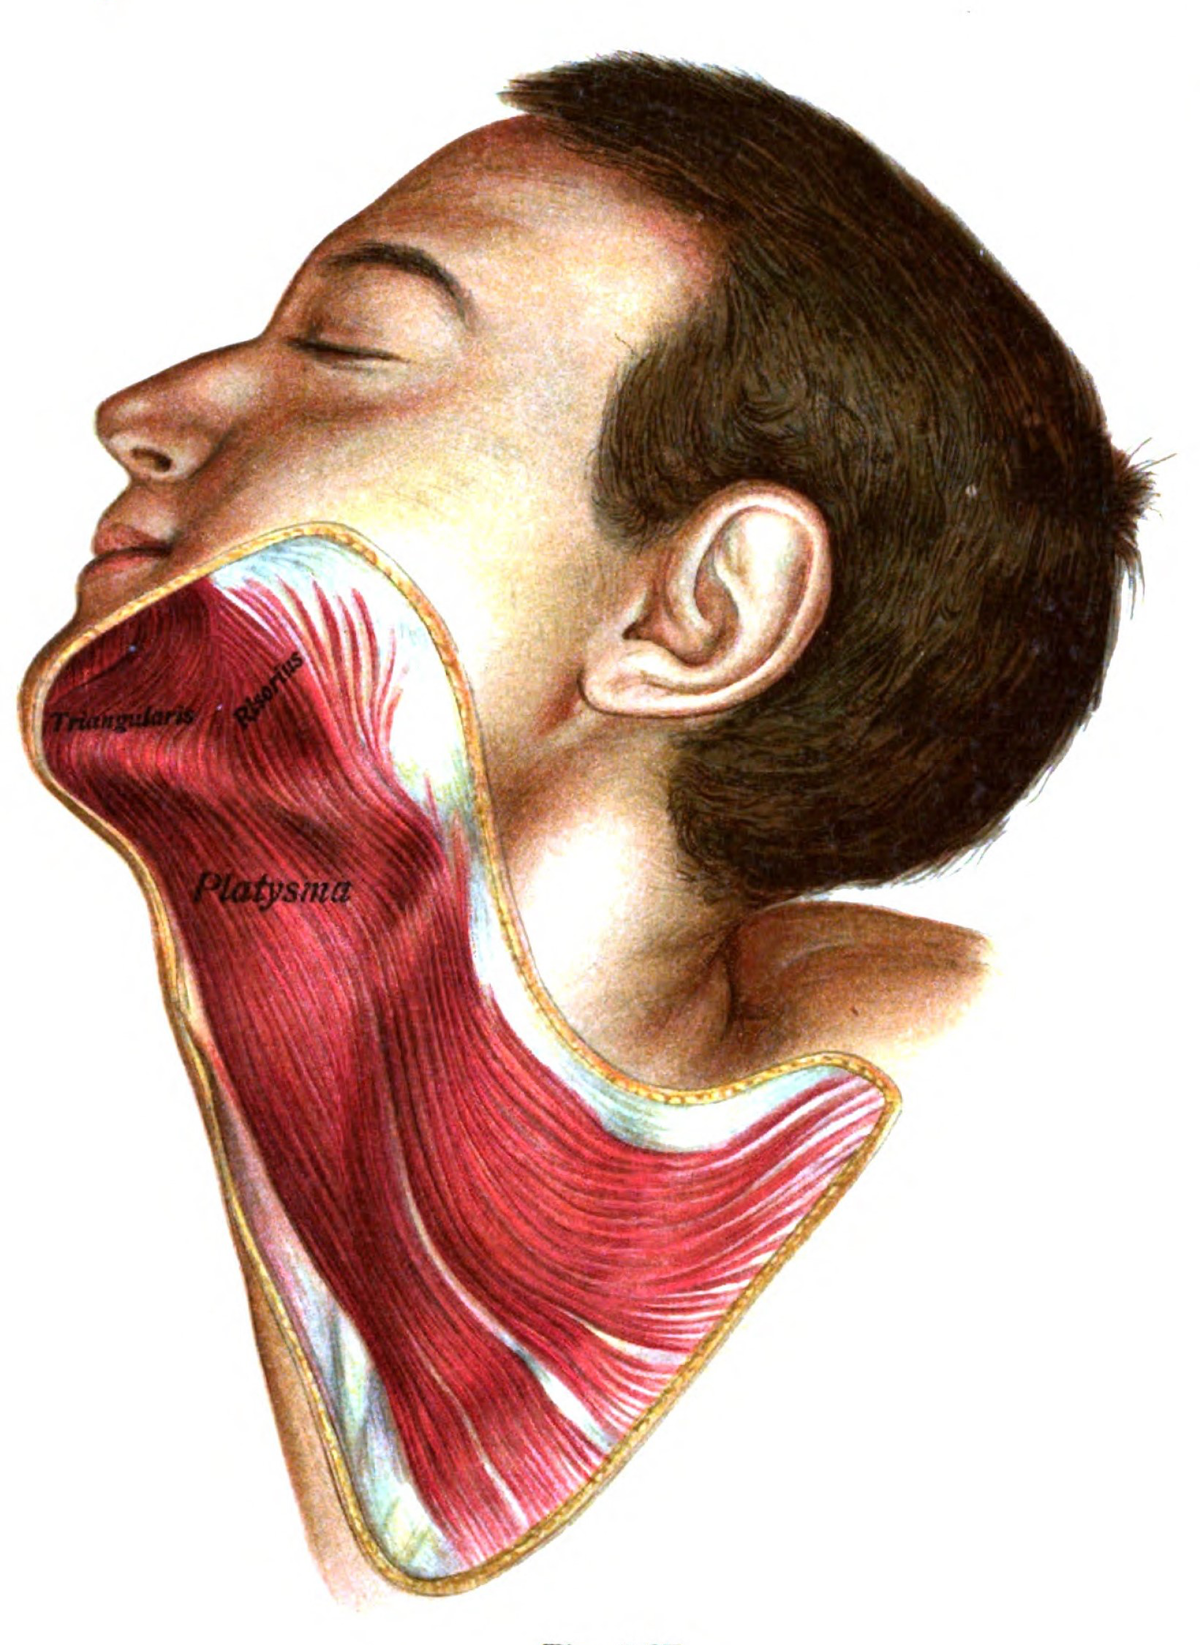 Platysma Muscle Wikipedia